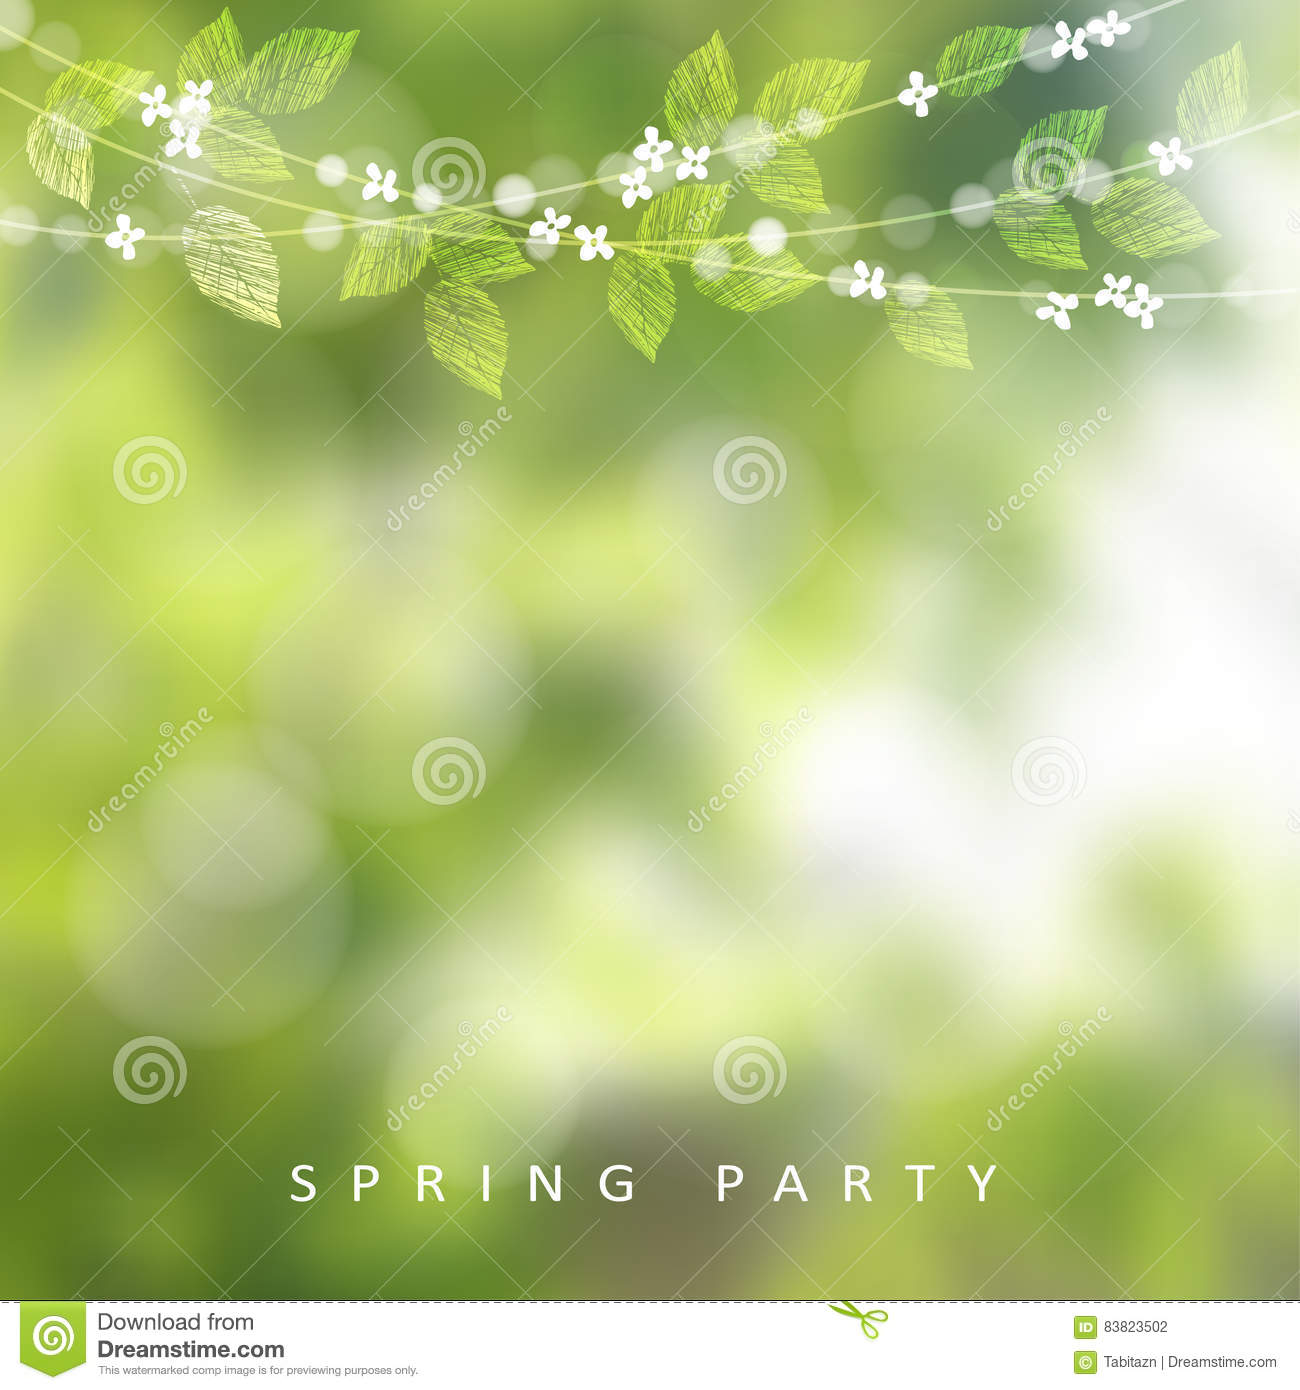 Spring Greeting Card Invitation String Of Lights Leaves And